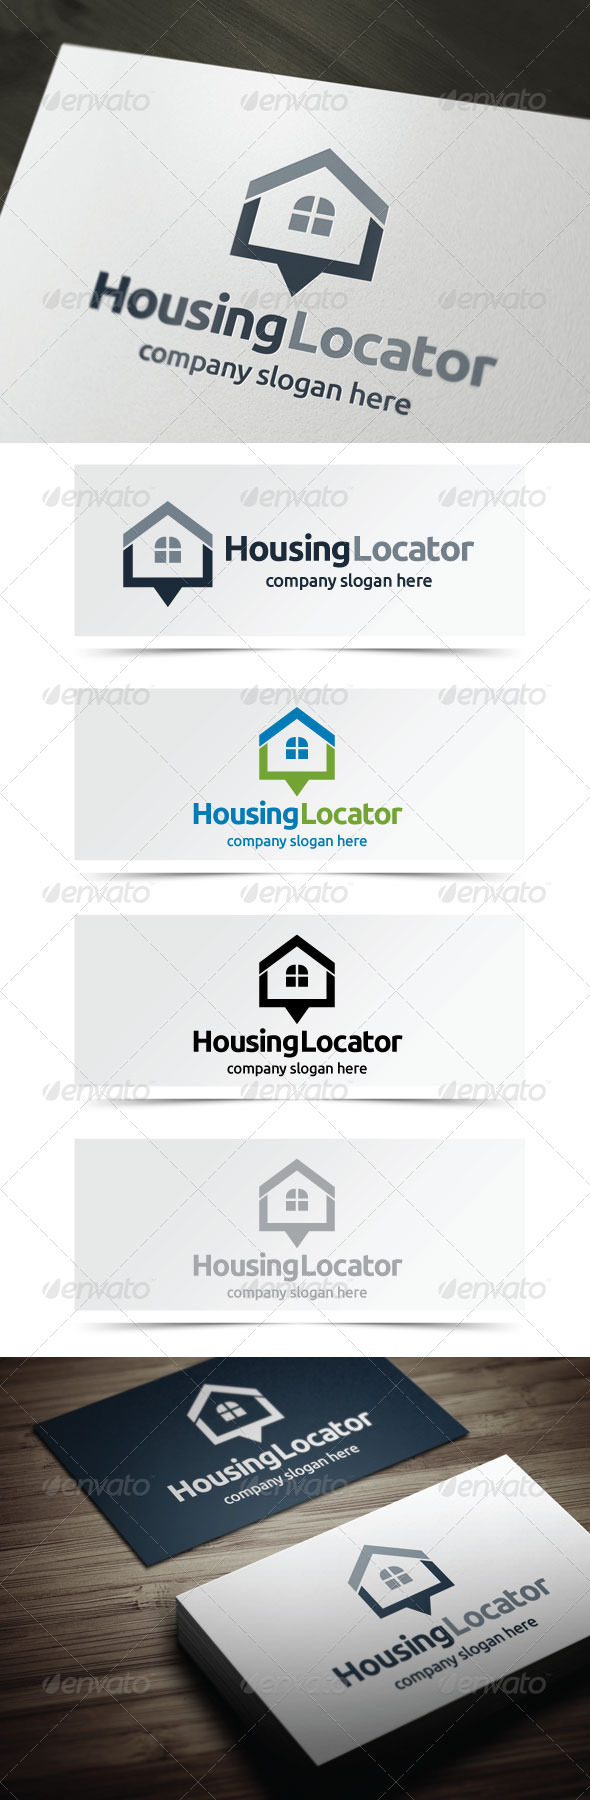 GraphicRiver Housing Locator 5355937